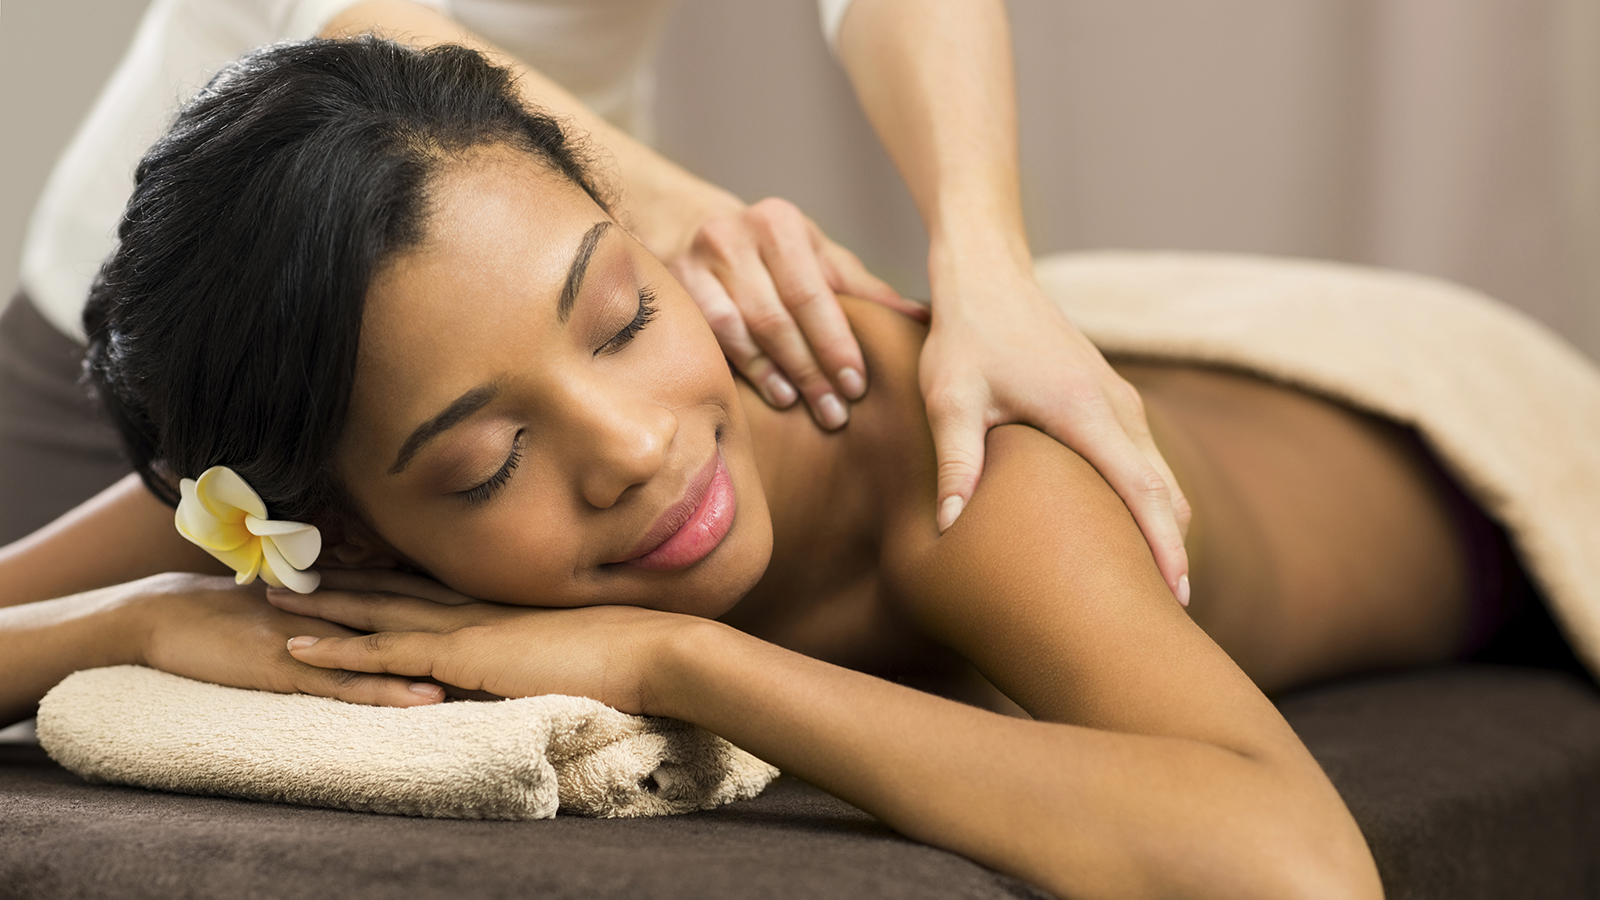 Enroll For Massage Courses - Be A Masseur